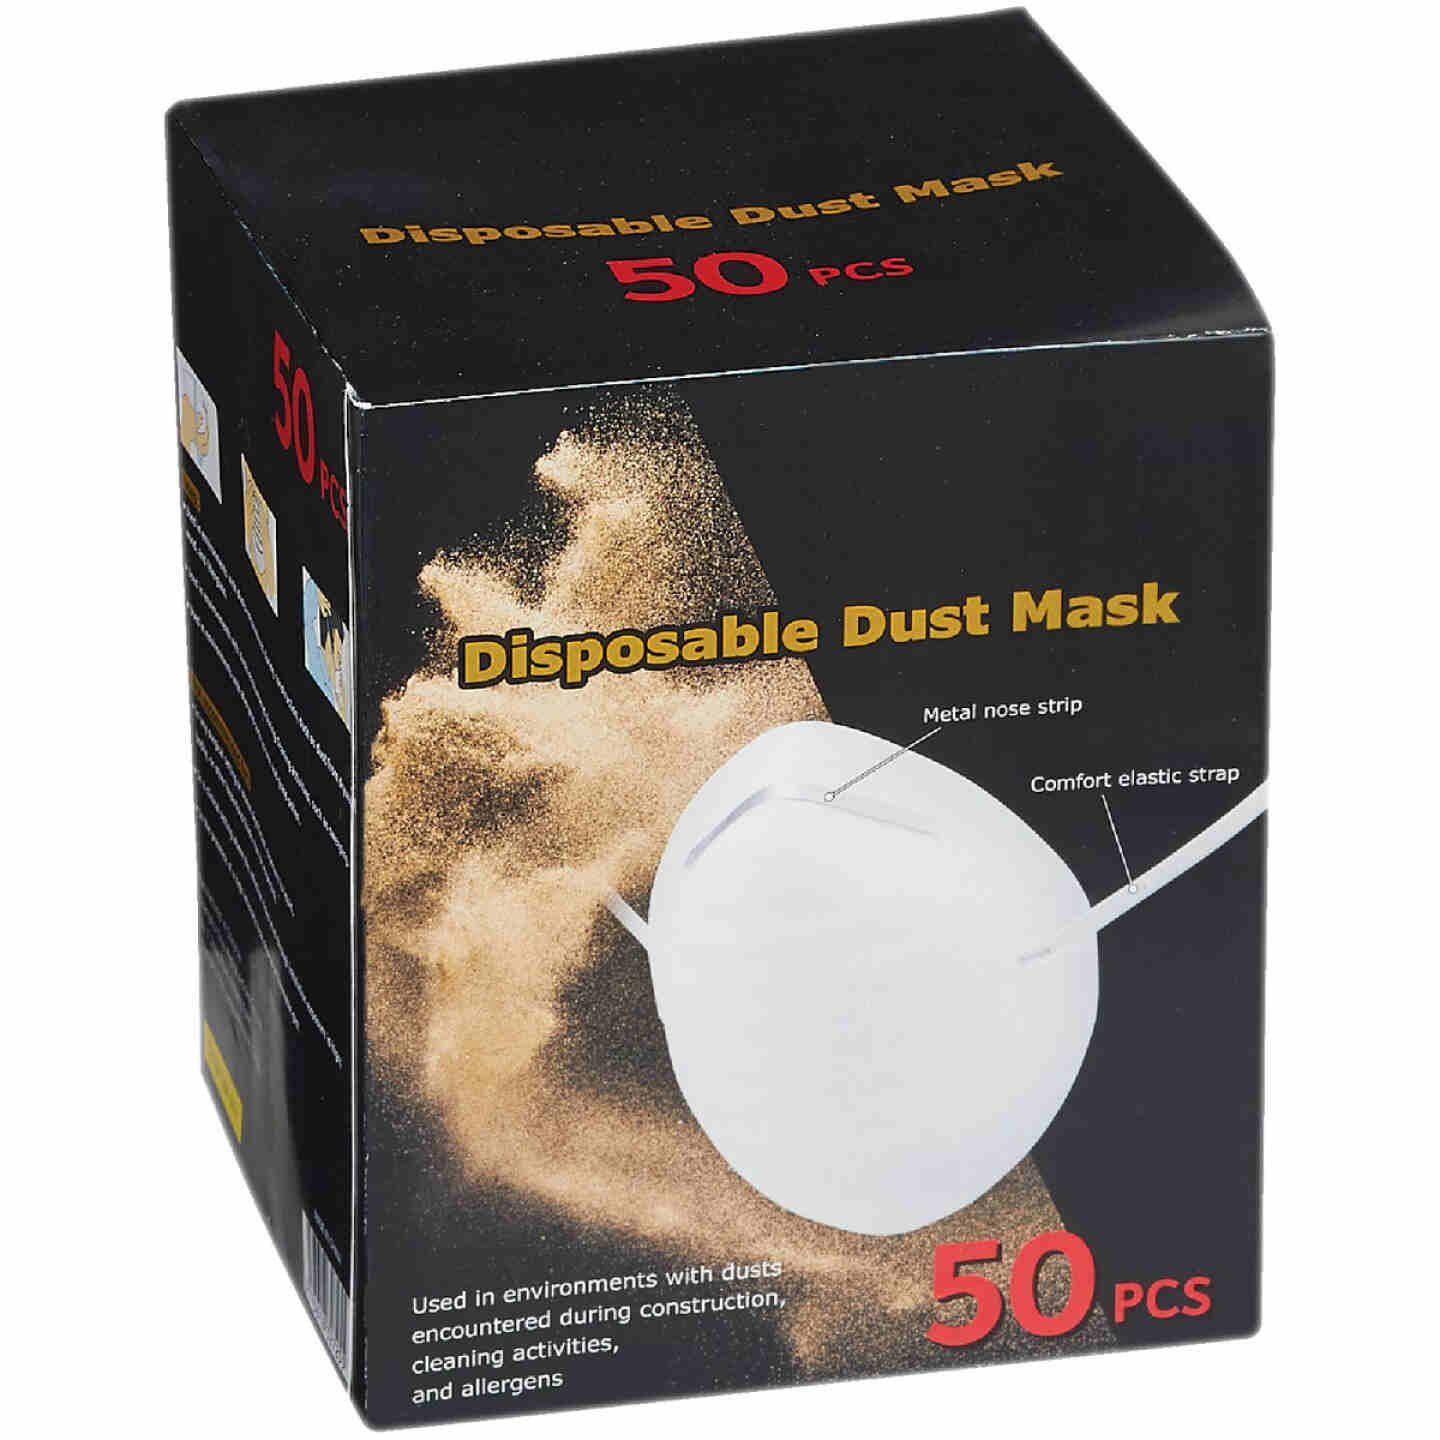 Disposable Dust & Face Mask (50-Pack) Image 1